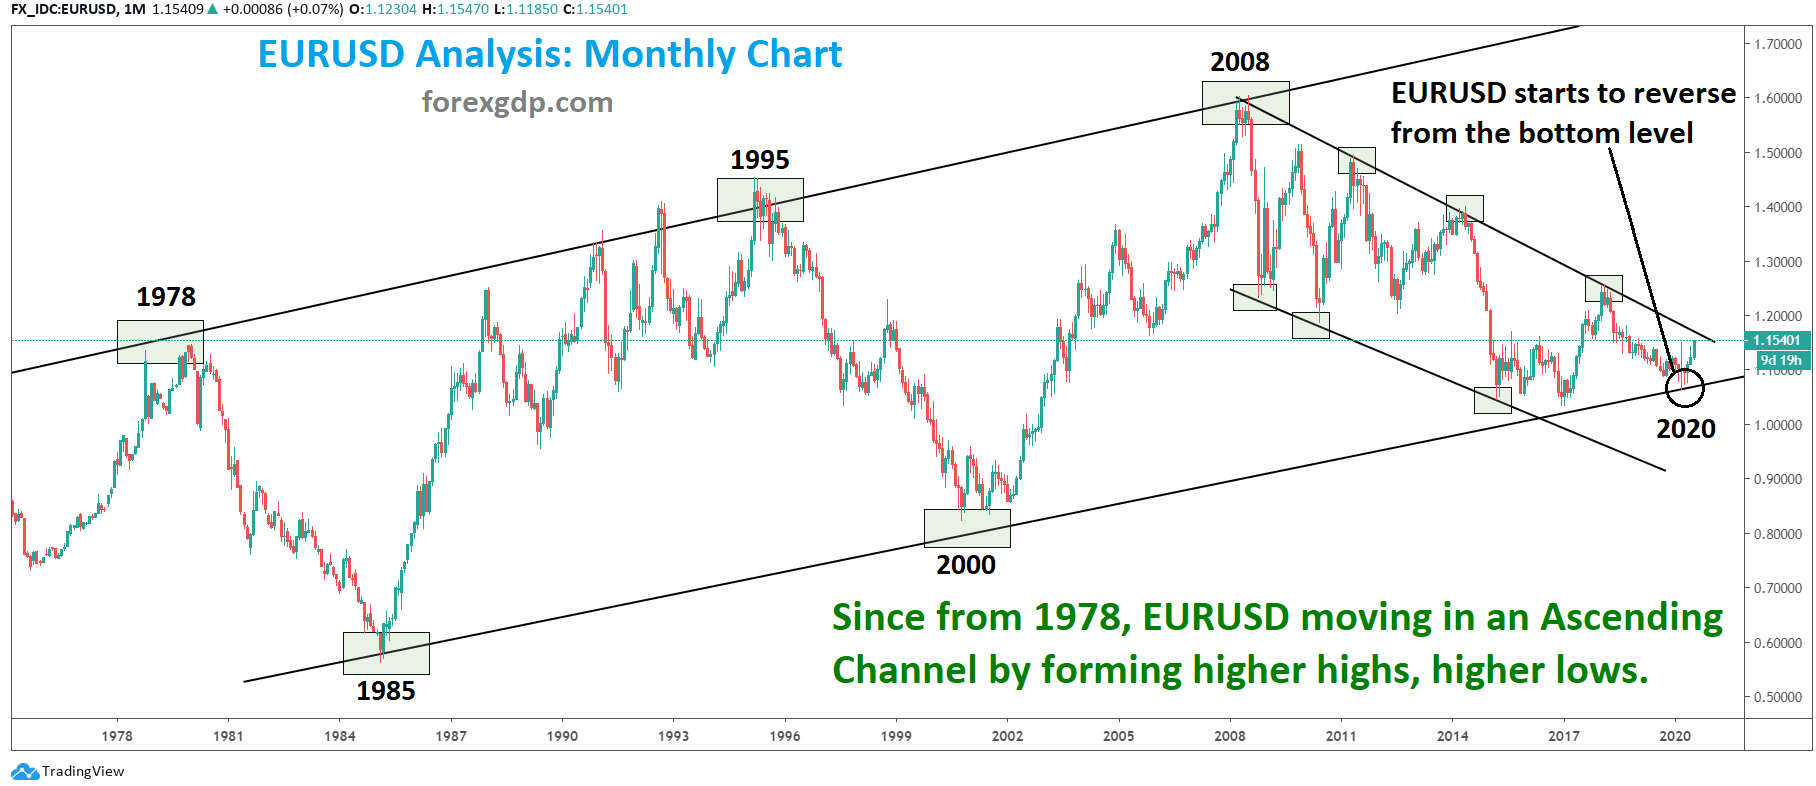 EURUSD starts to reverse from bottom of the ascending channel